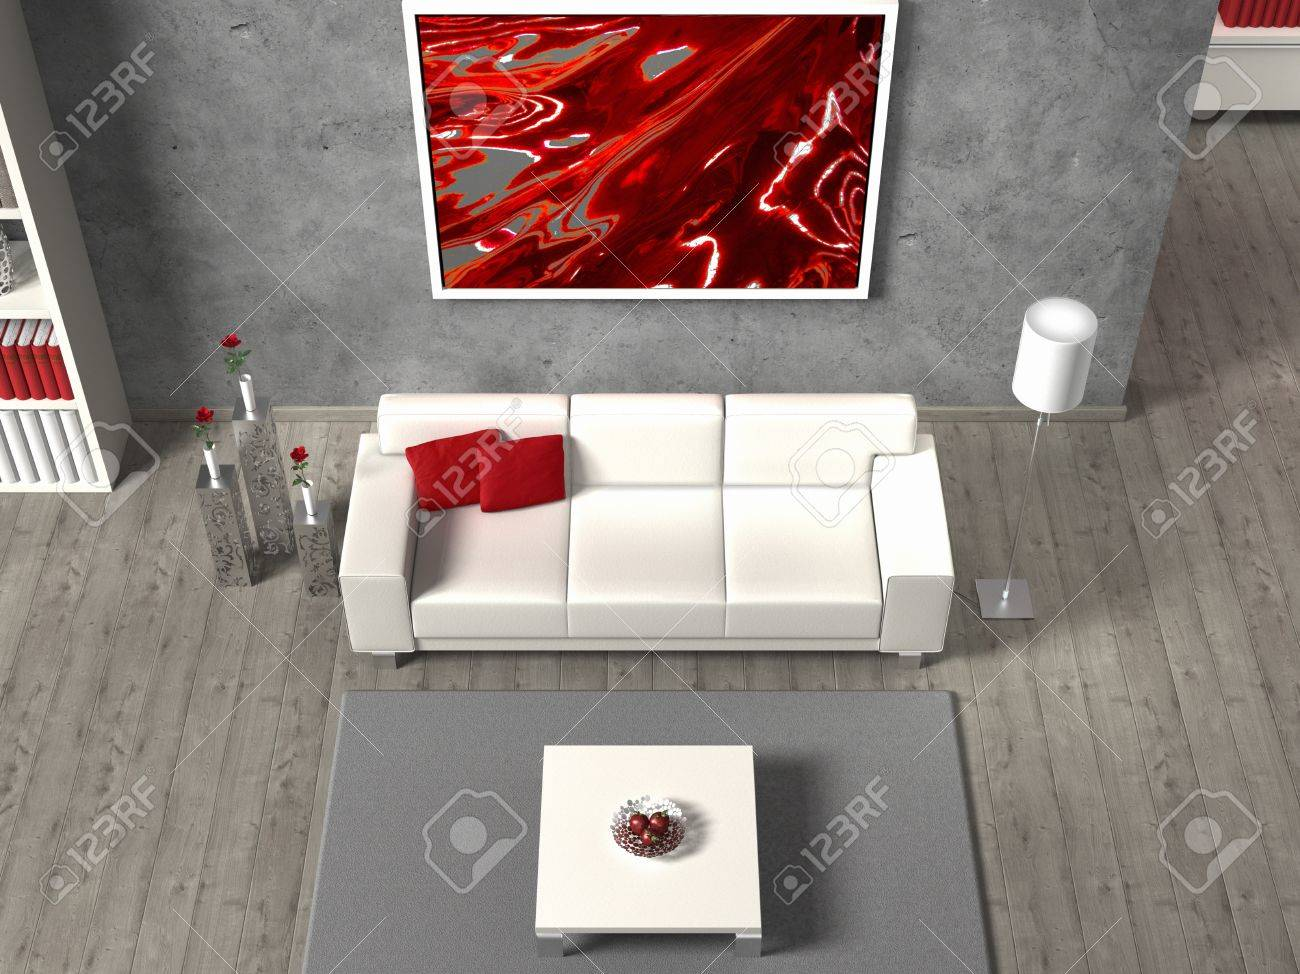 Fictitious Modern Living Room In Aerial View The Image In The